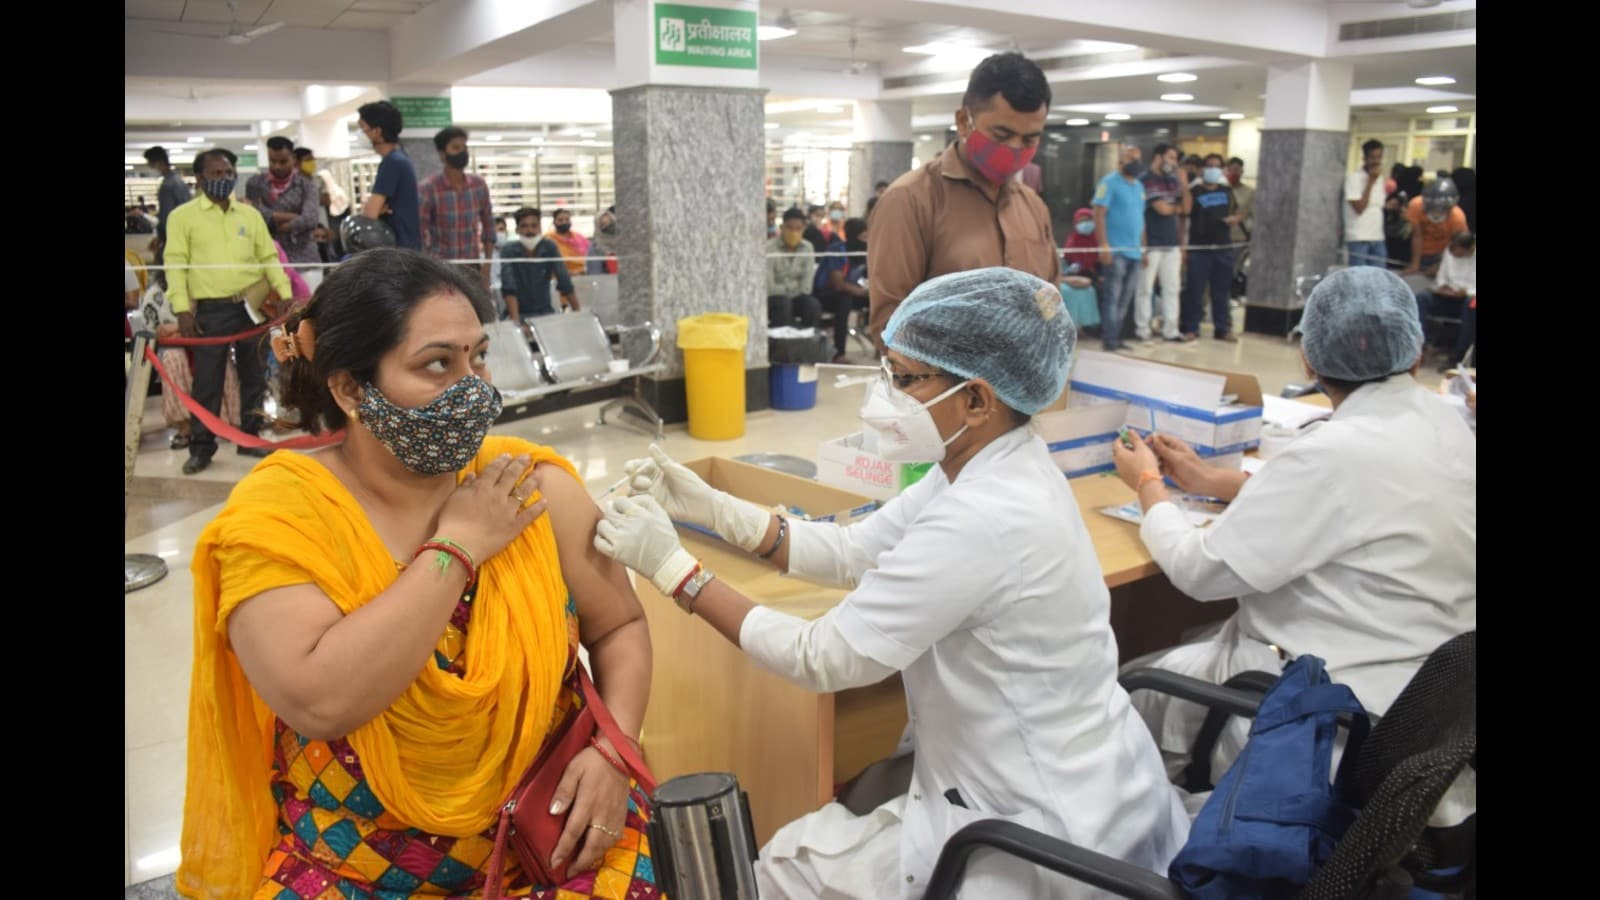 Over 60,000 get Covid vaccine jabs in Lucknow in a day